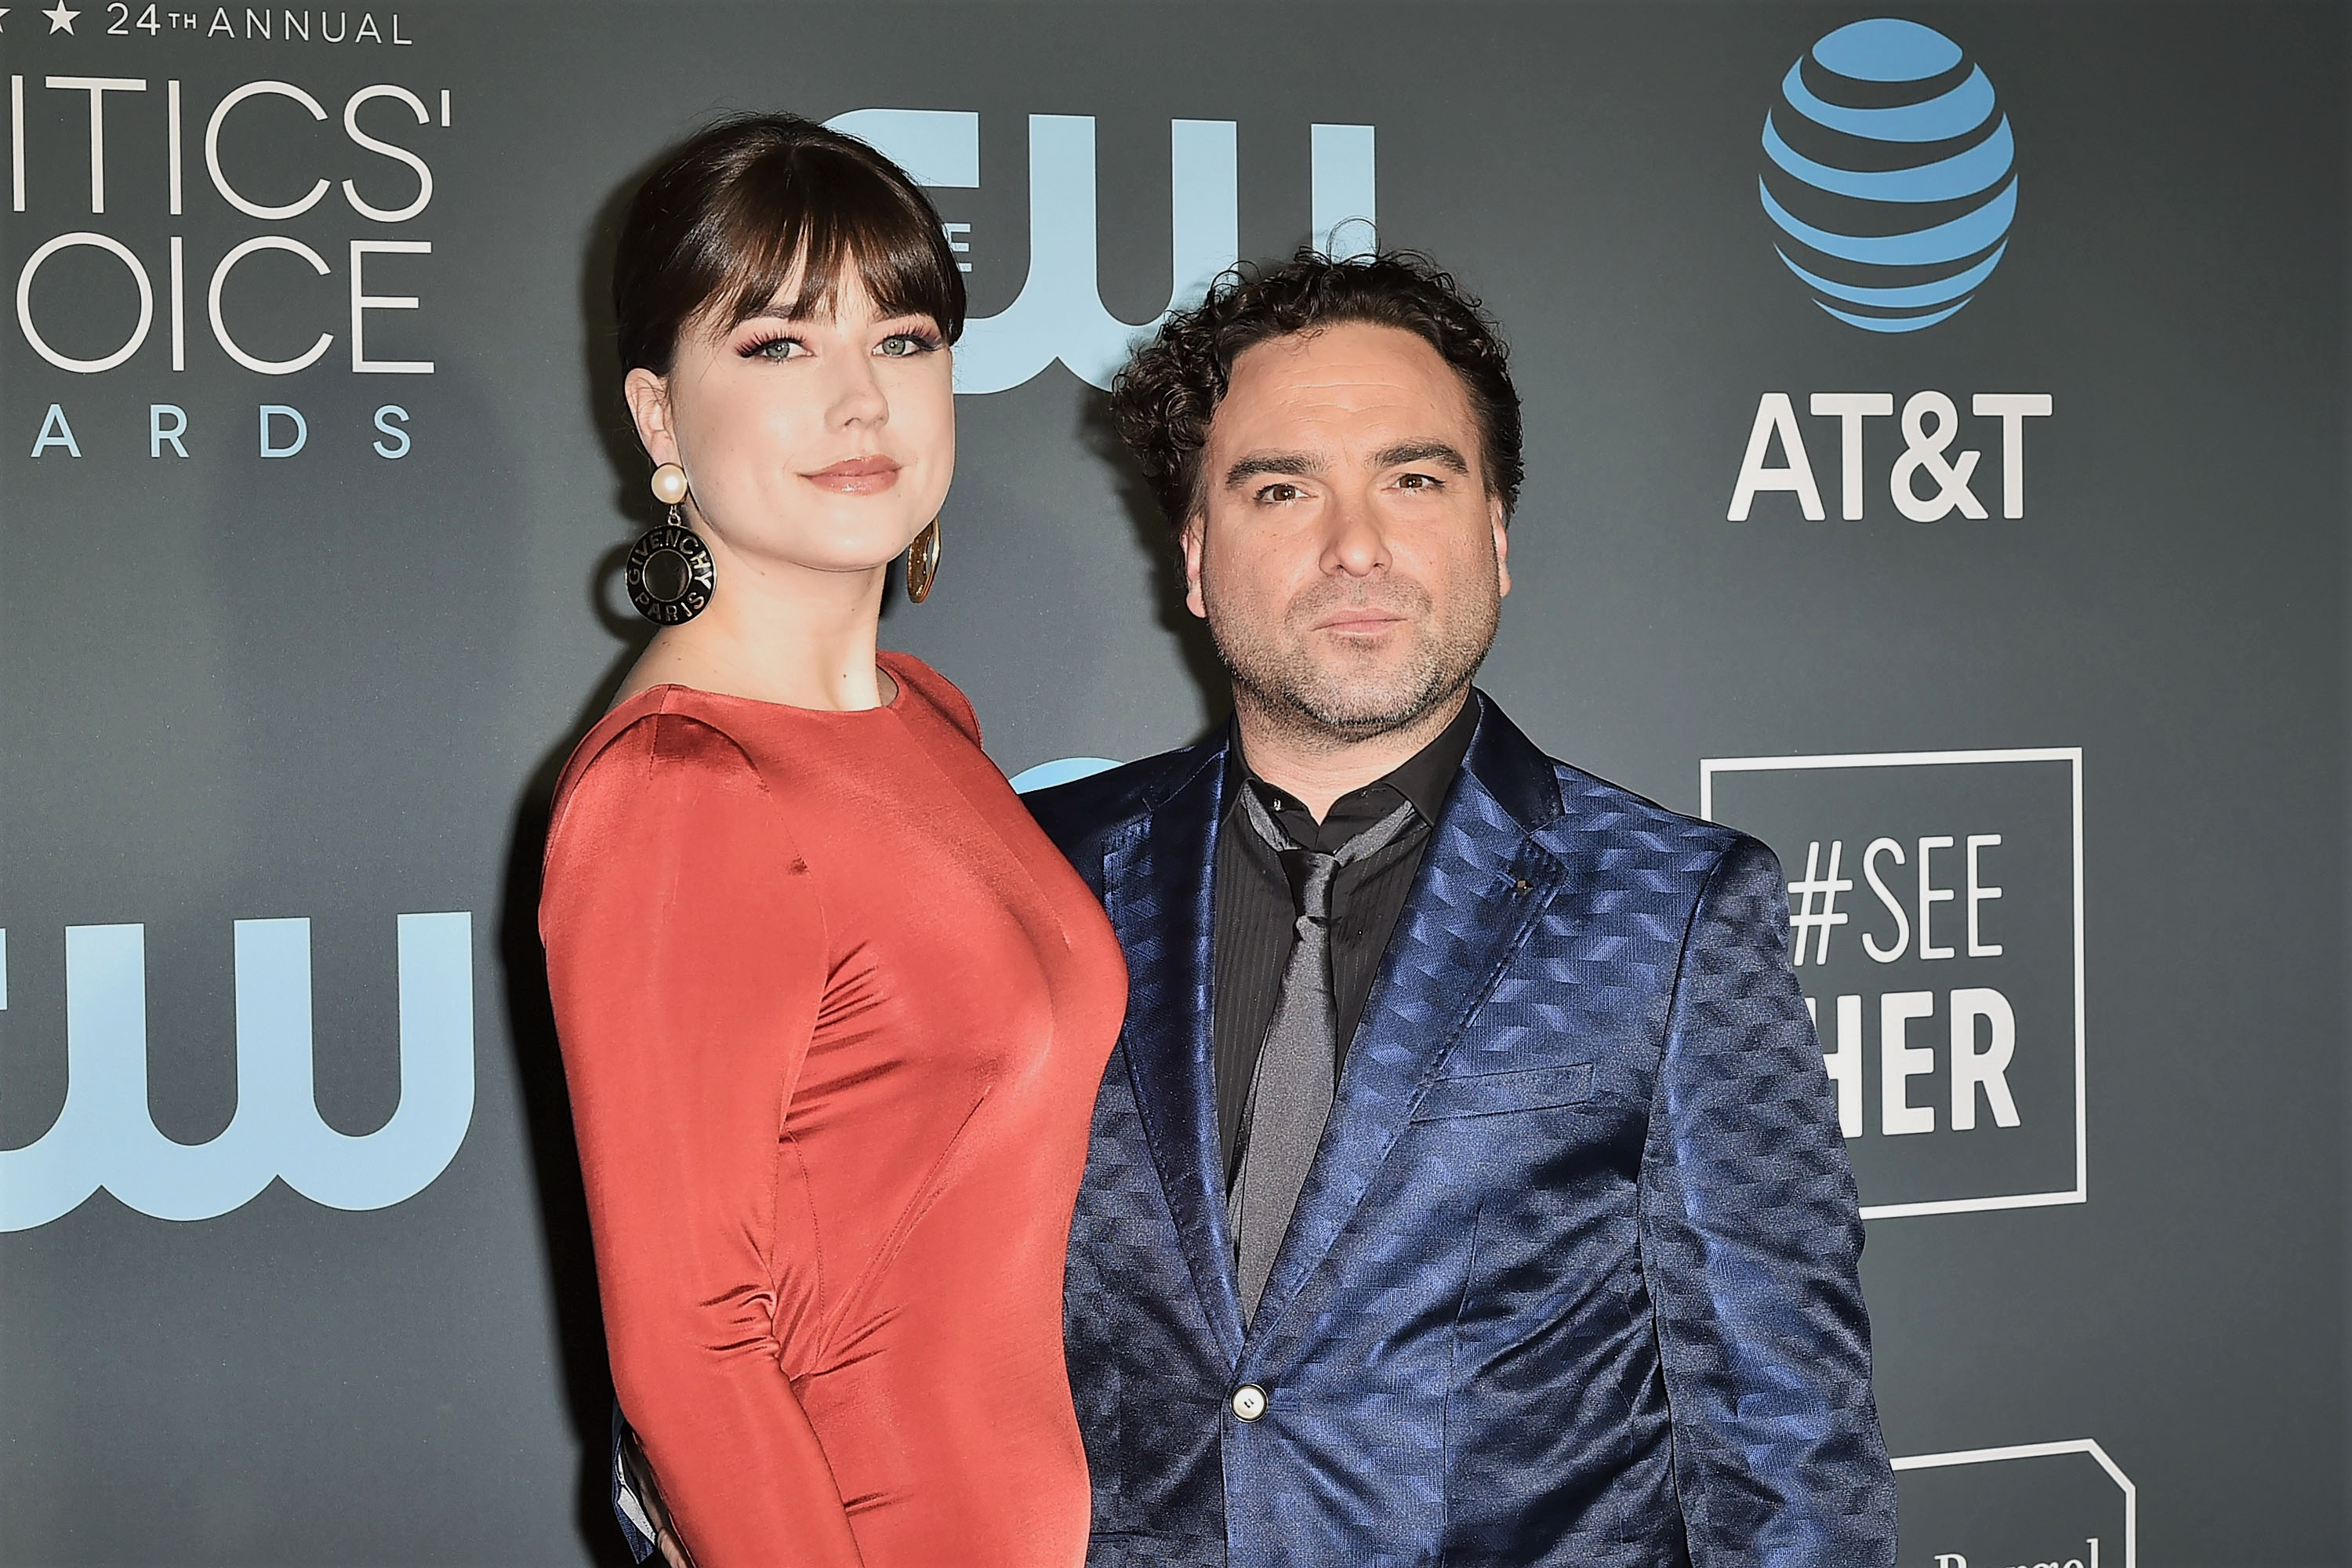 Bazinga! Big Bang Theory's Johnny Galecki and Girlfriend Alaina Meyer Expecting First Child